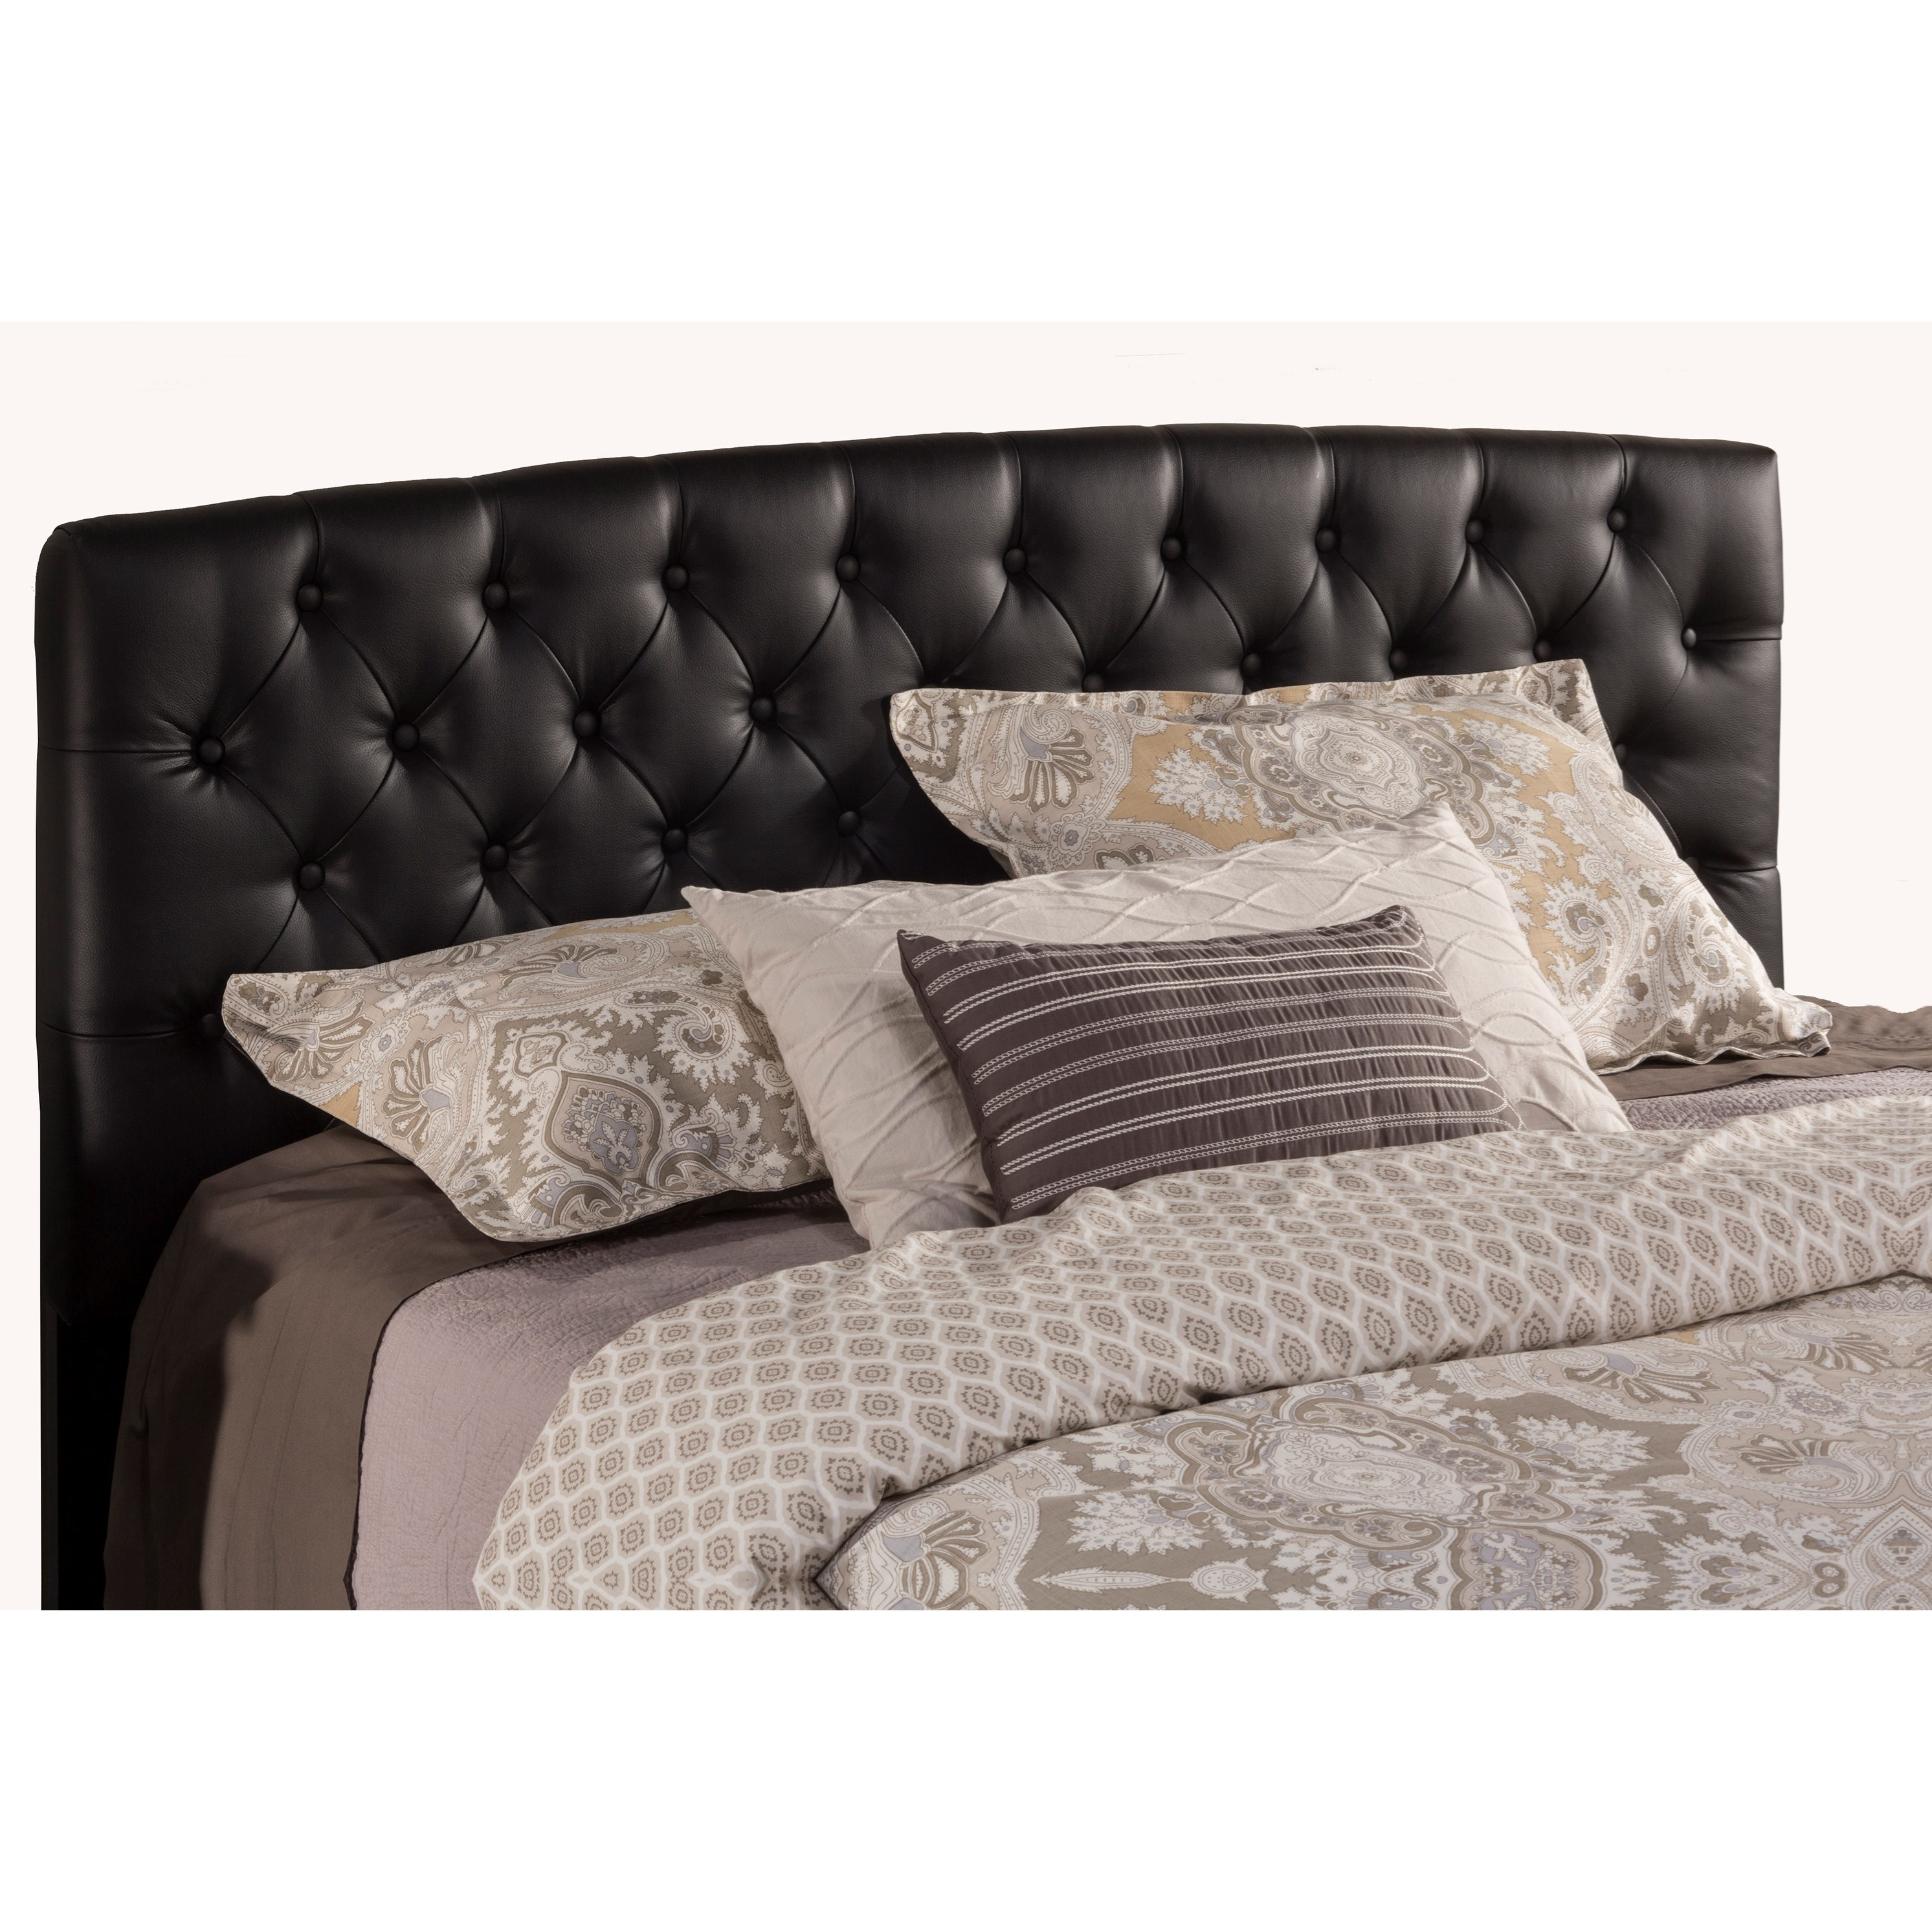 Upholstered Beds Queen Headboard by Hillsdale at Mueller Furniture